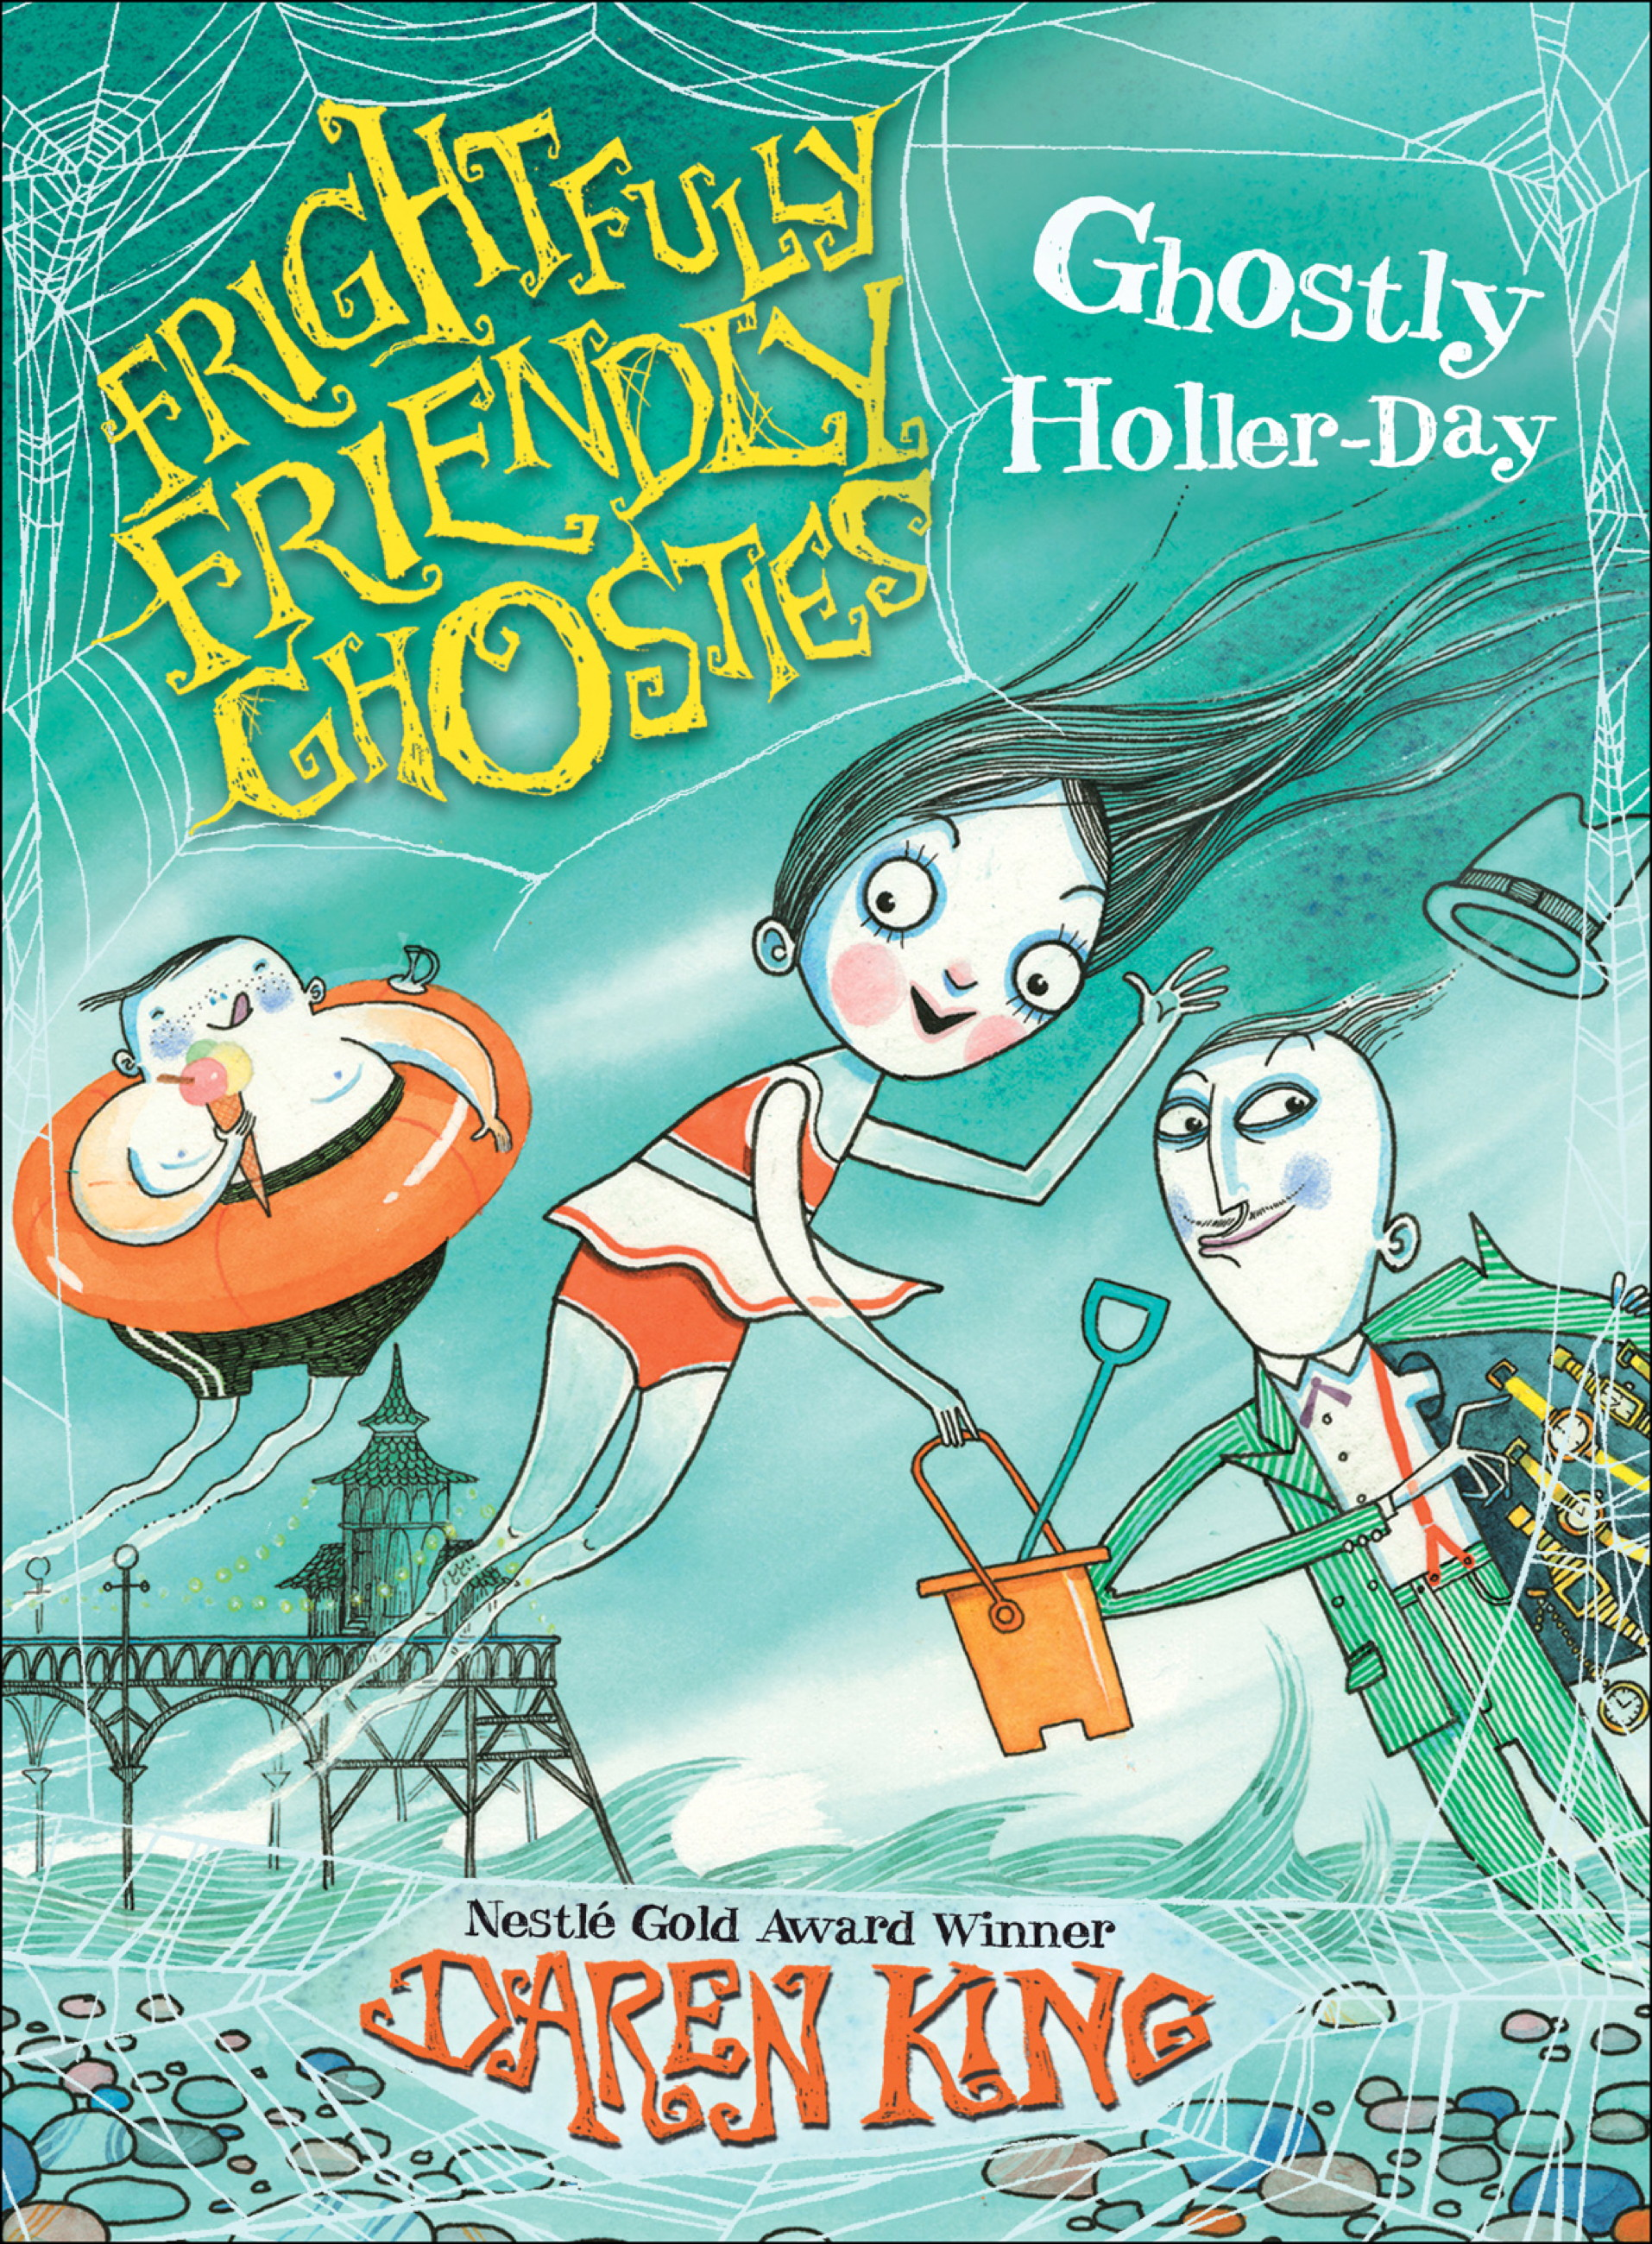 Ghostly Holler-Day